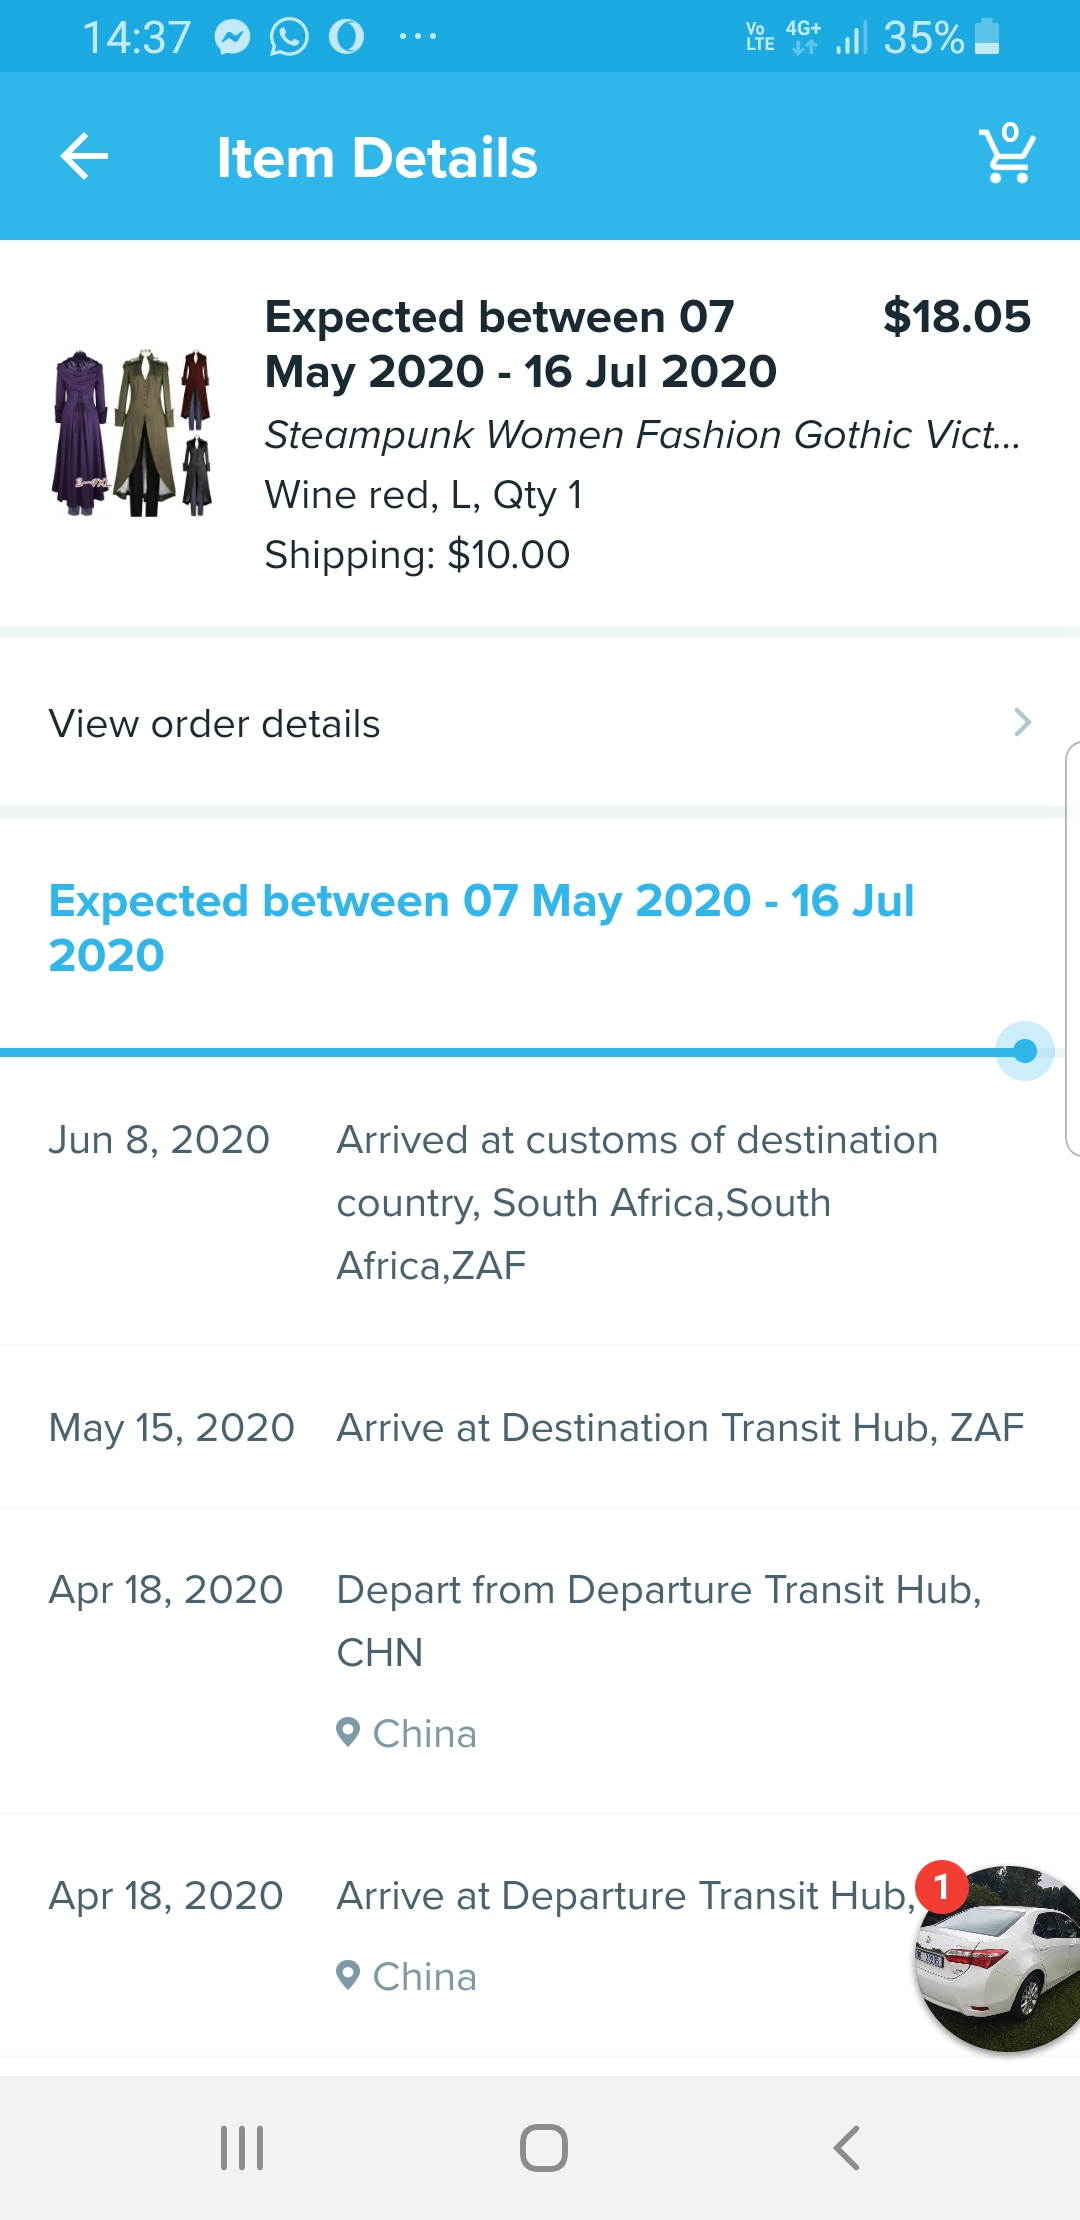 Did not receive my items ordered in March 2020